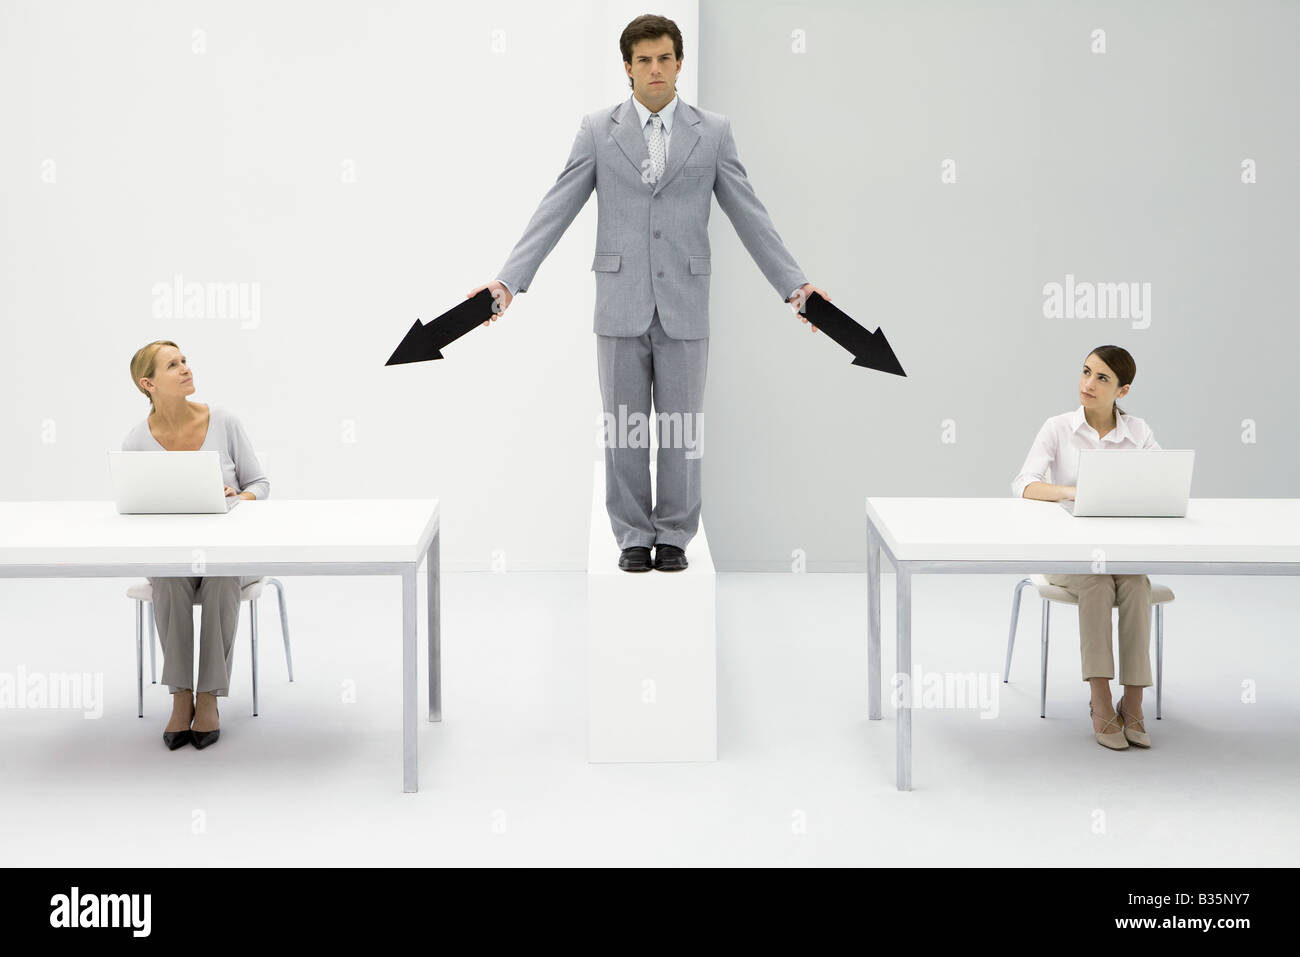 Businessman standing between two female employees, pointing arrows at each of them - Stock Image